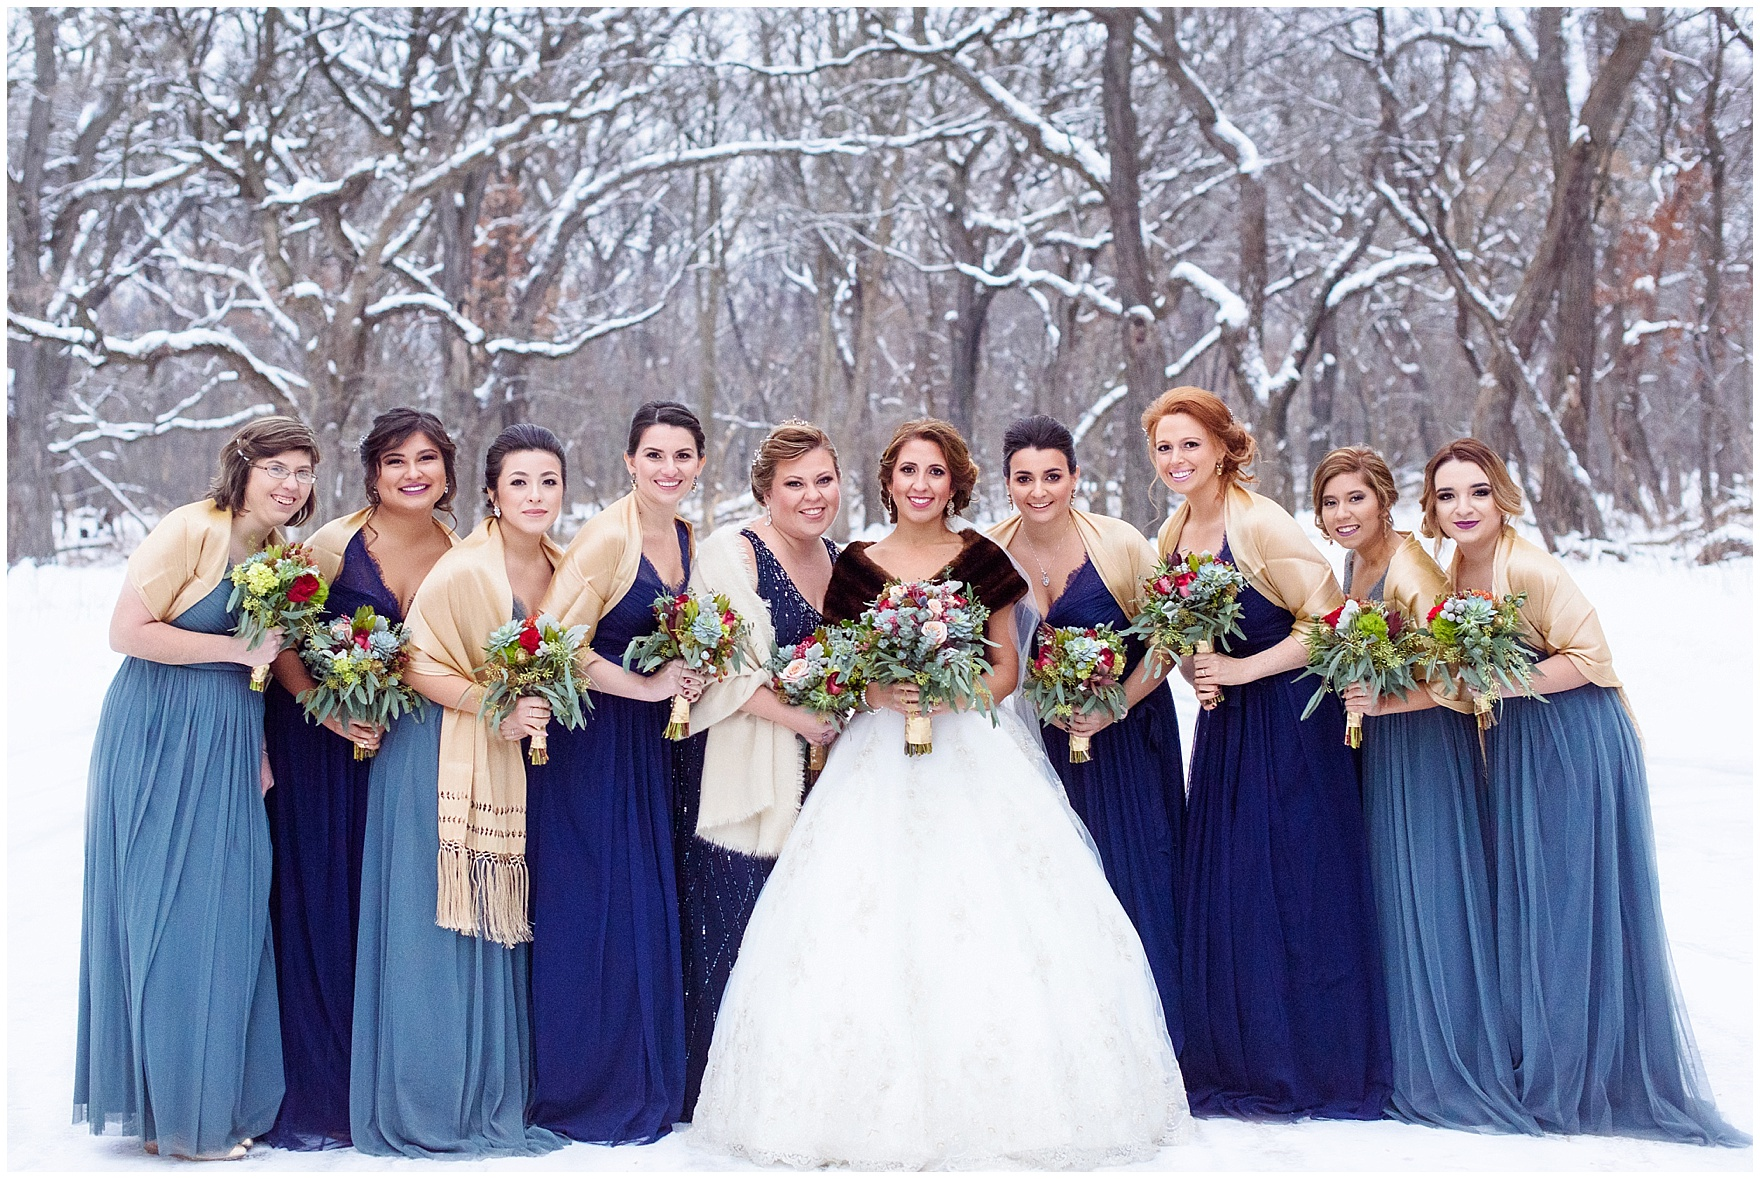 Bridesmaids In Shawls And Bride Fur Stole A Snowy Forest Preserve For Chicago